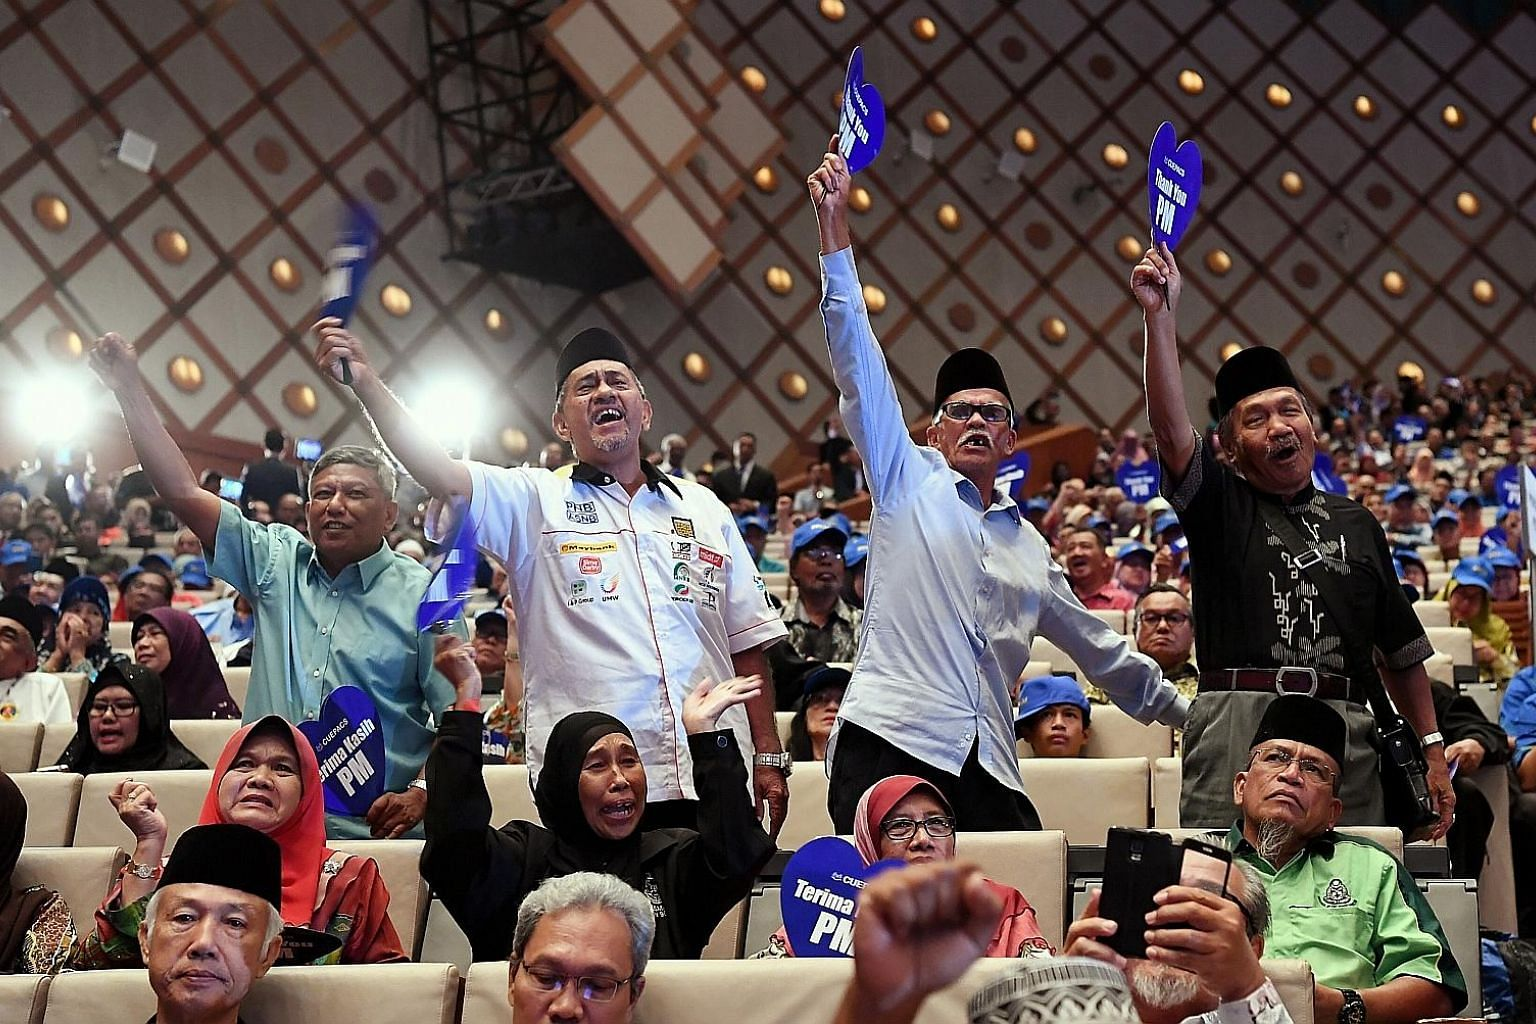 Civil service retirees cheering the announcement of a cash payment of RM750 (S$260) for them yesterday. Civil servants have traditionally been supporters of the ruling coalition.